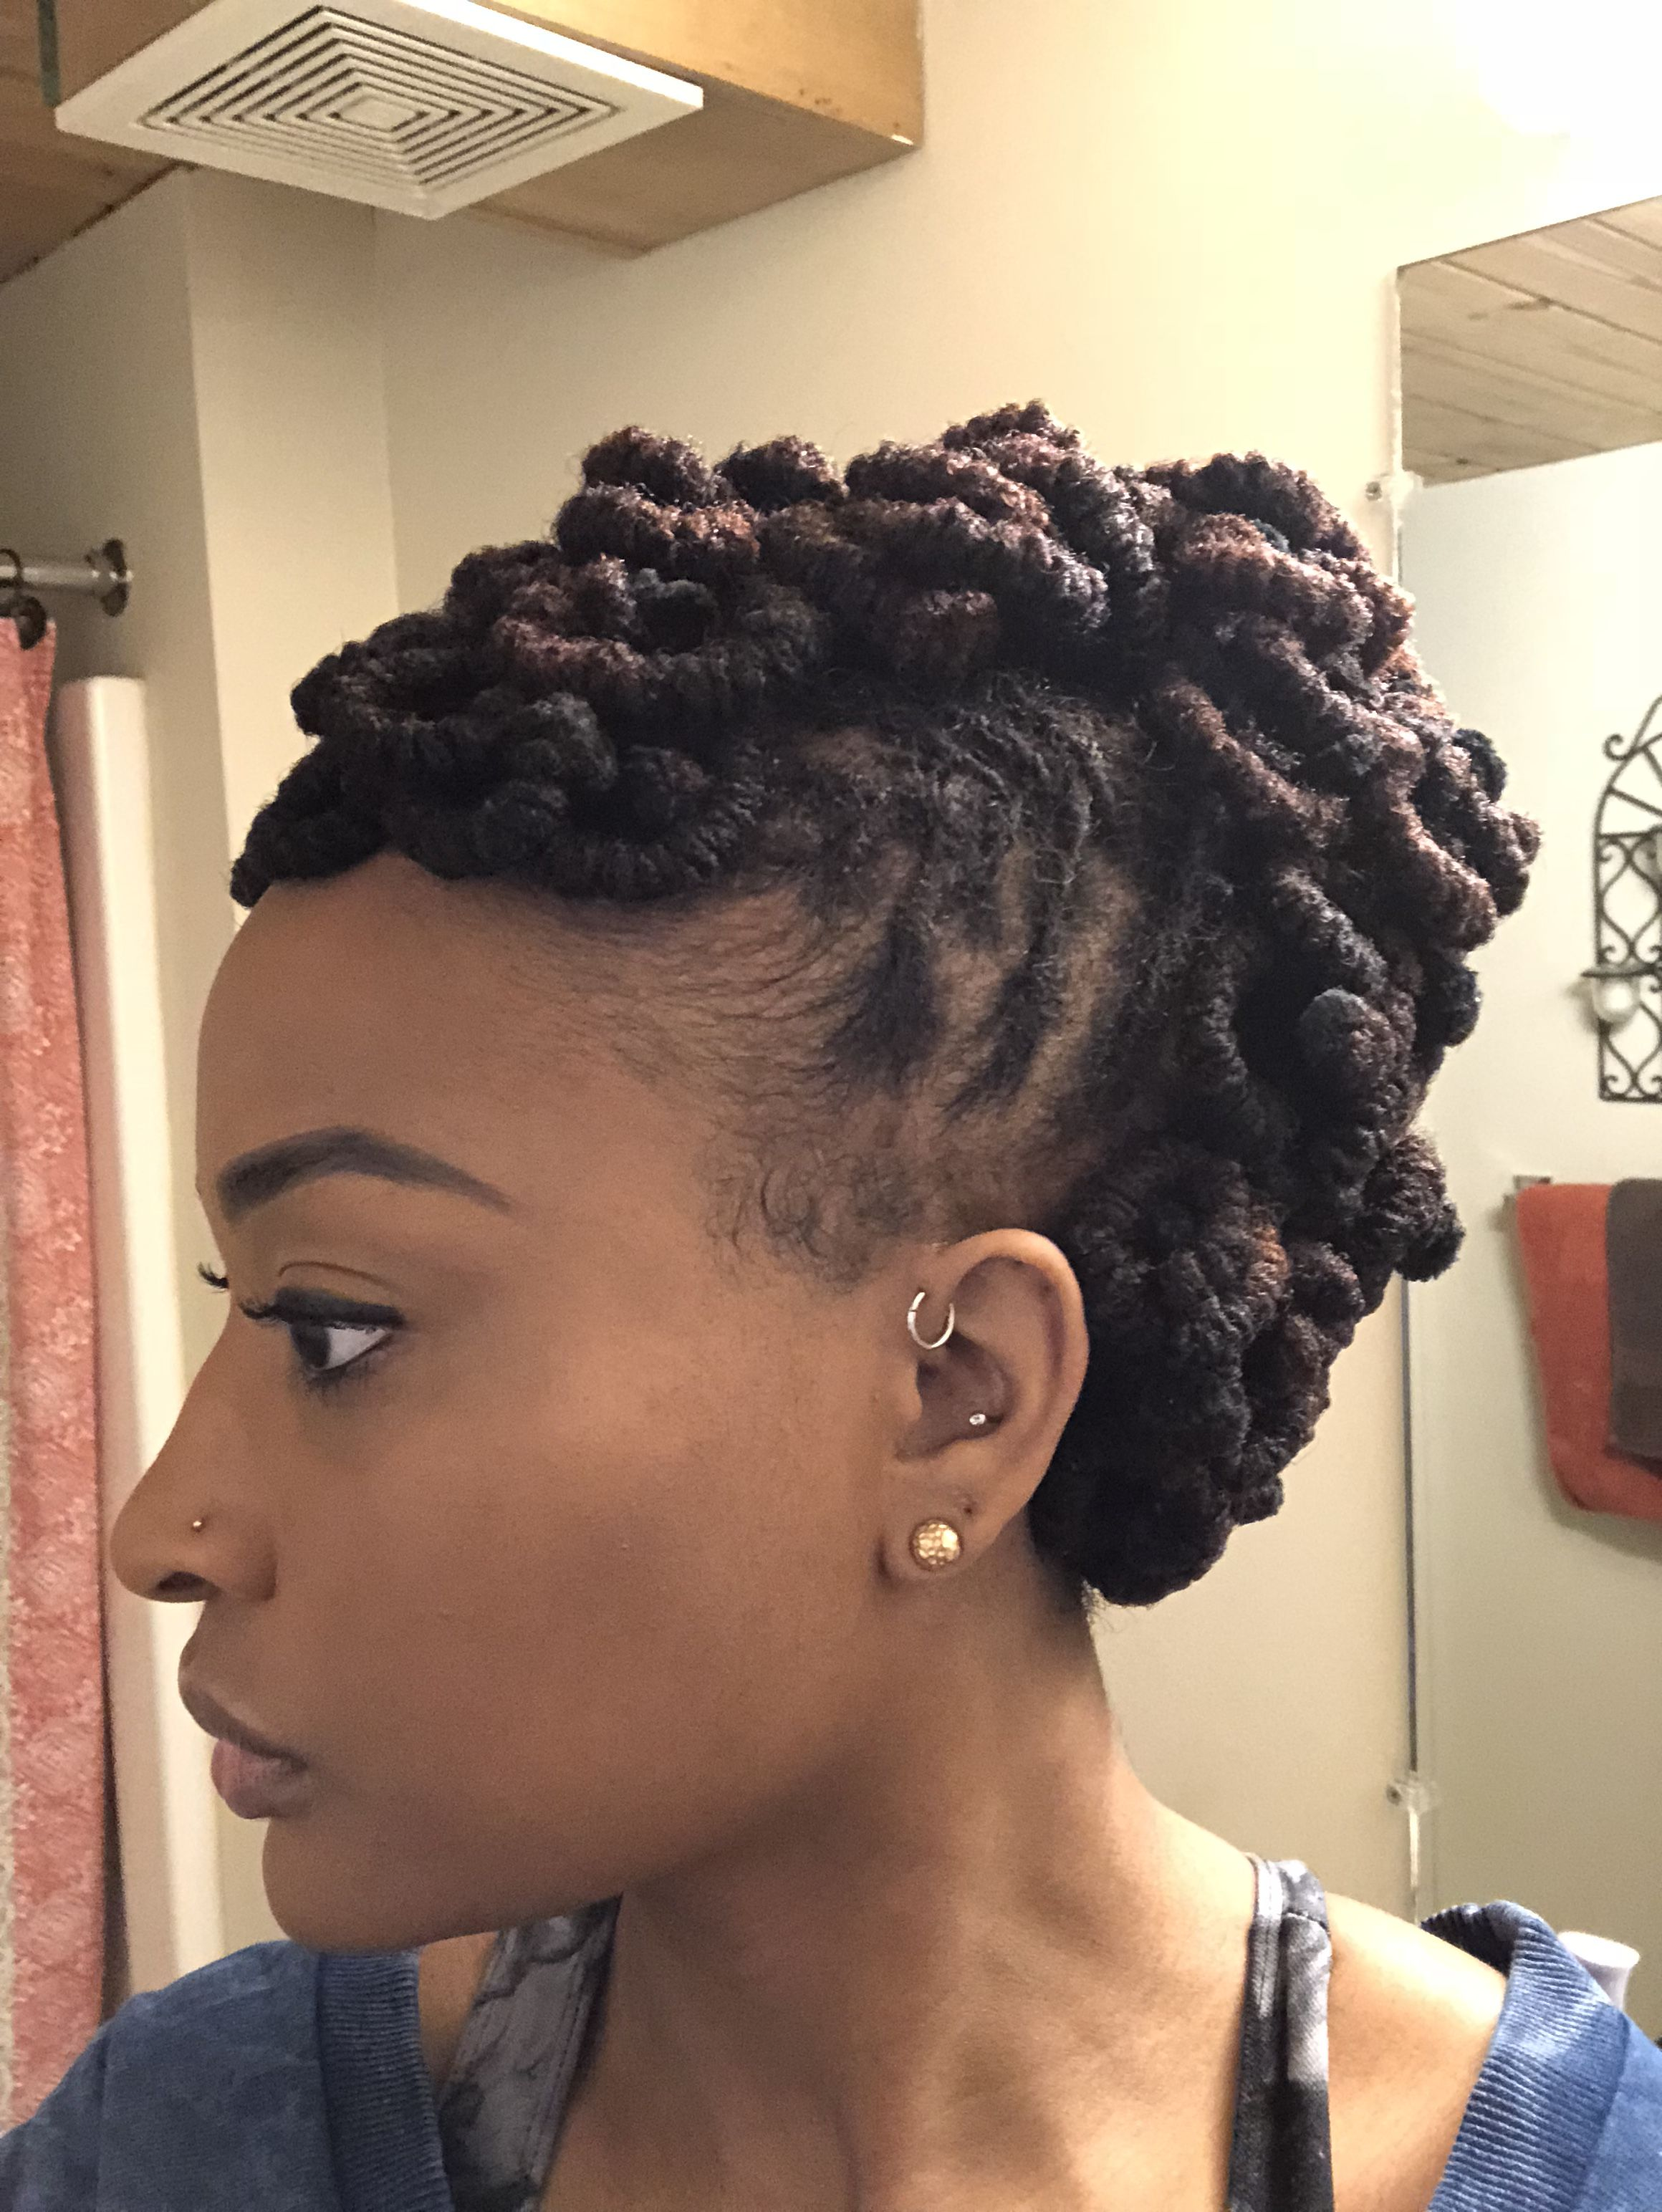 Loving This Style Locs Hairstyles Natural Hair Styles Hair Styles